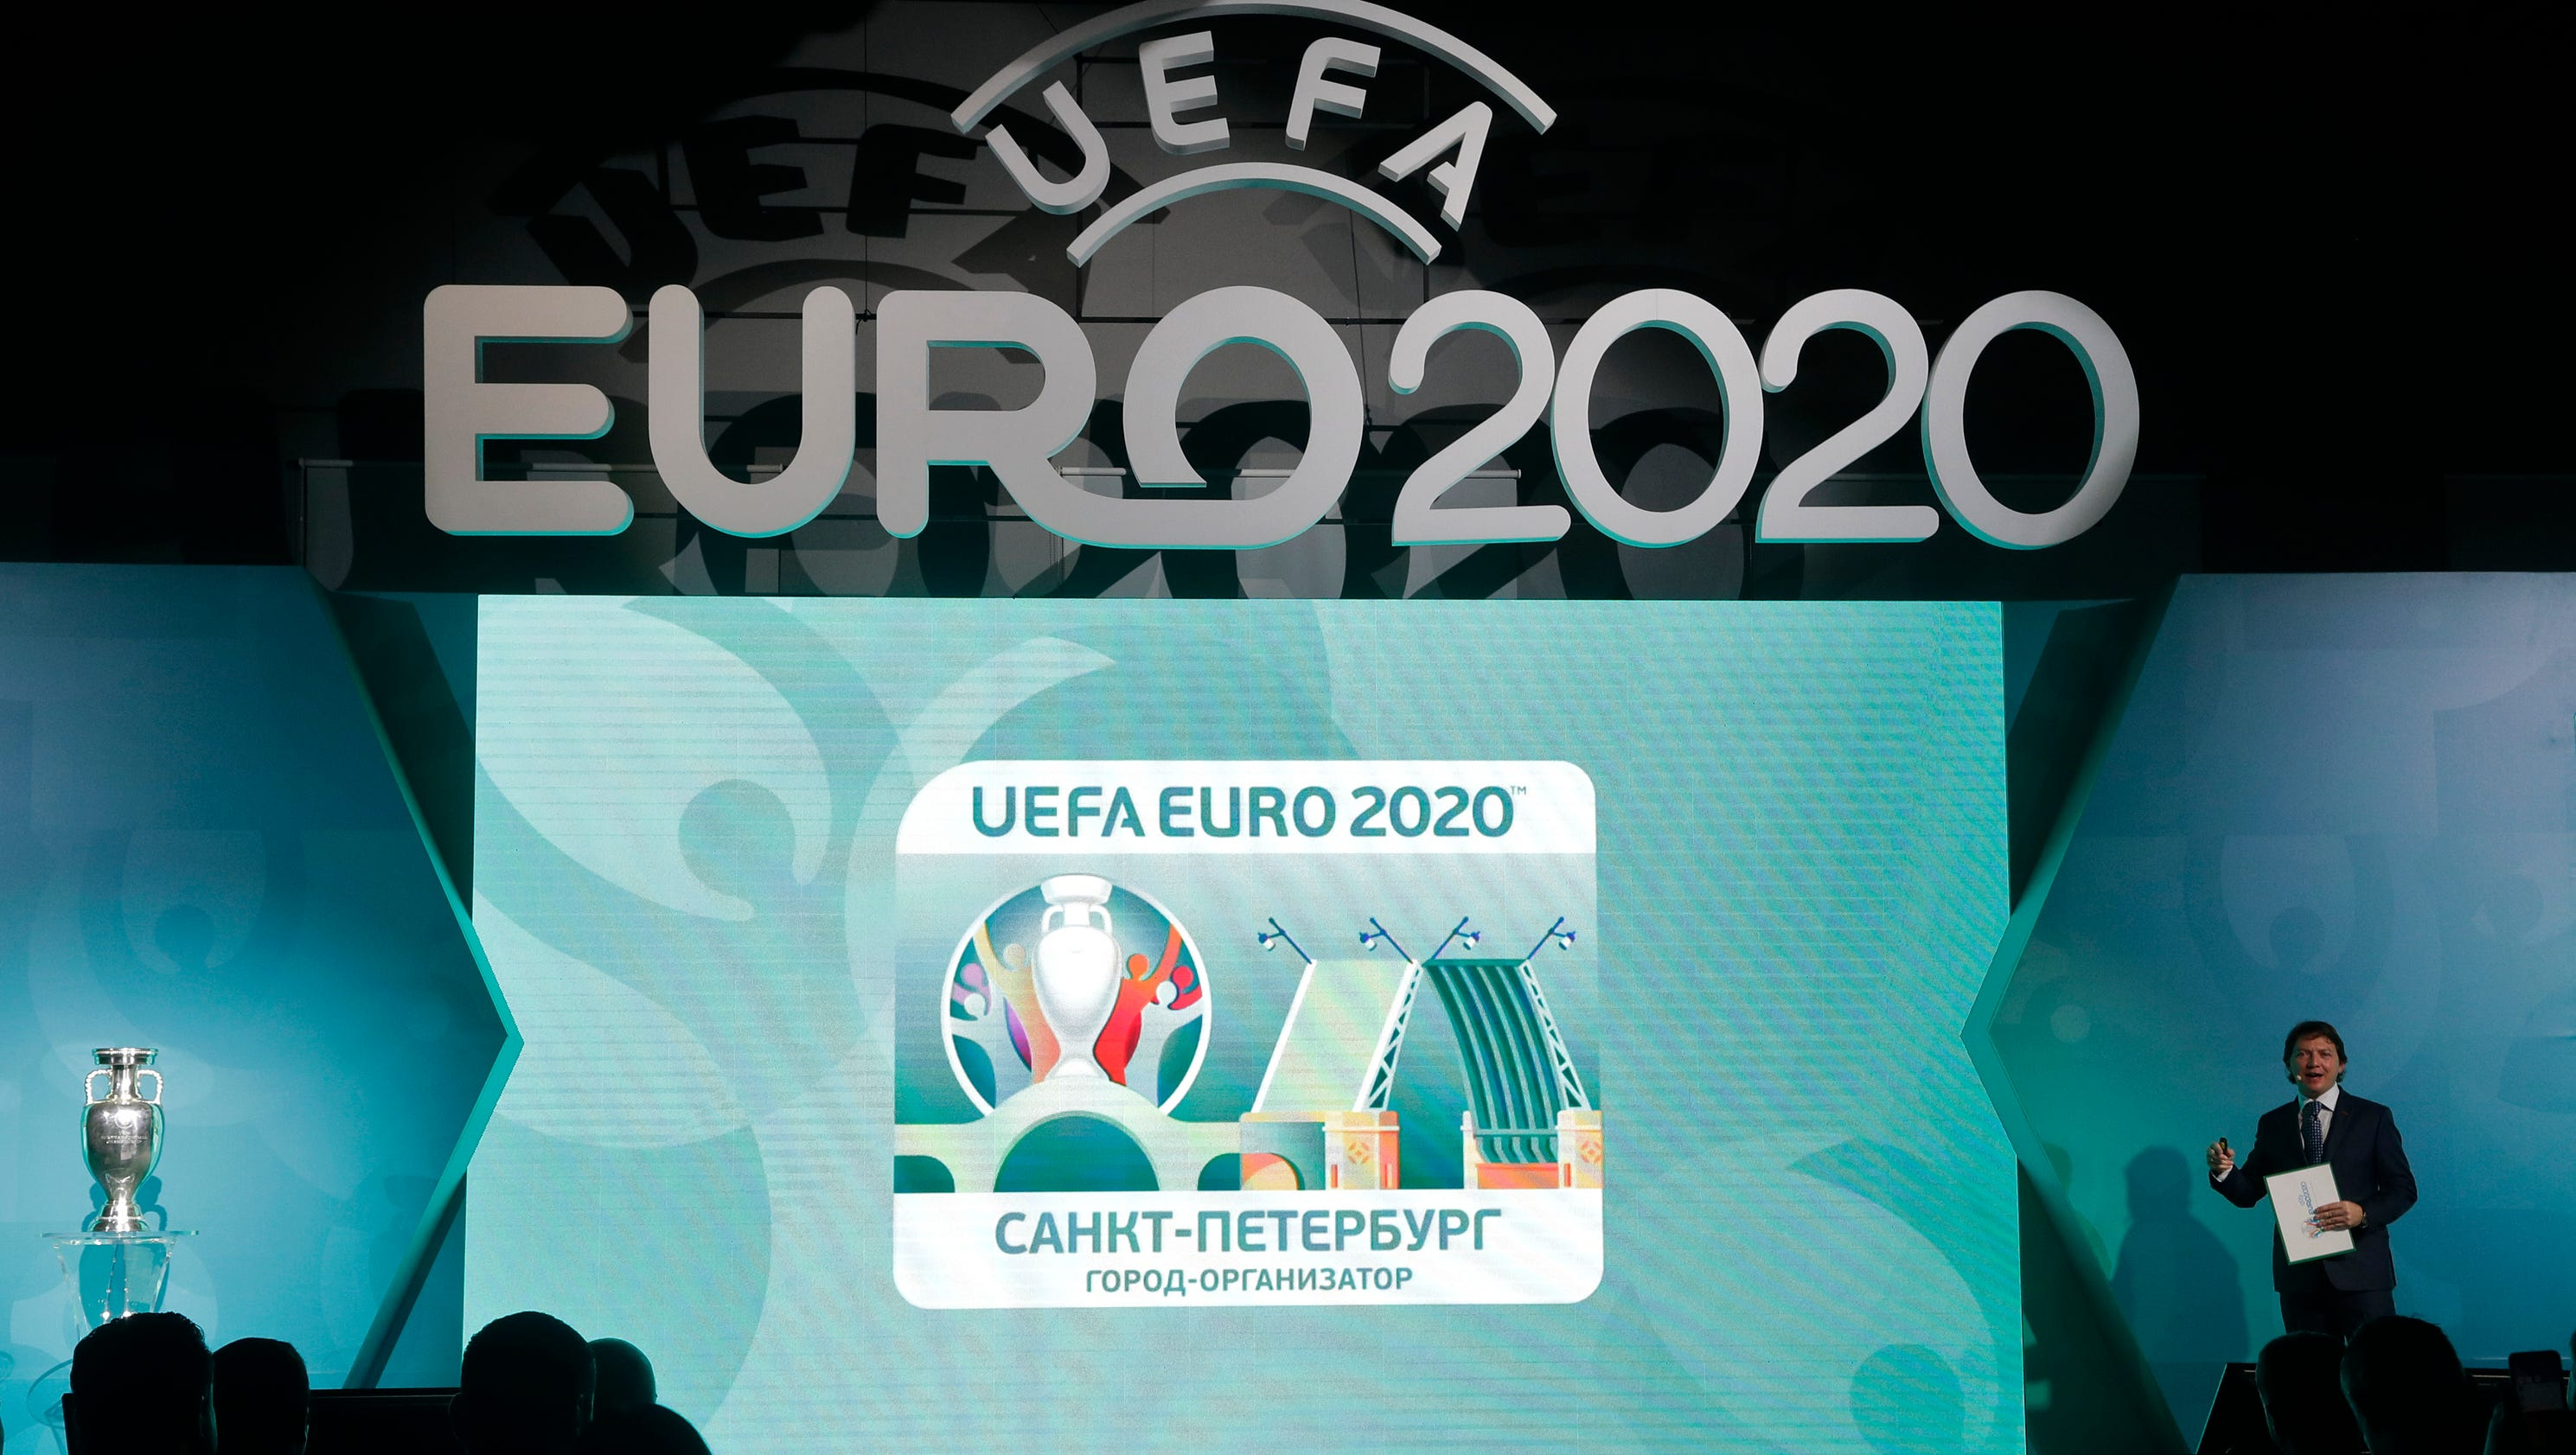 UEFA president says travel tricky for fans at Euro 2020